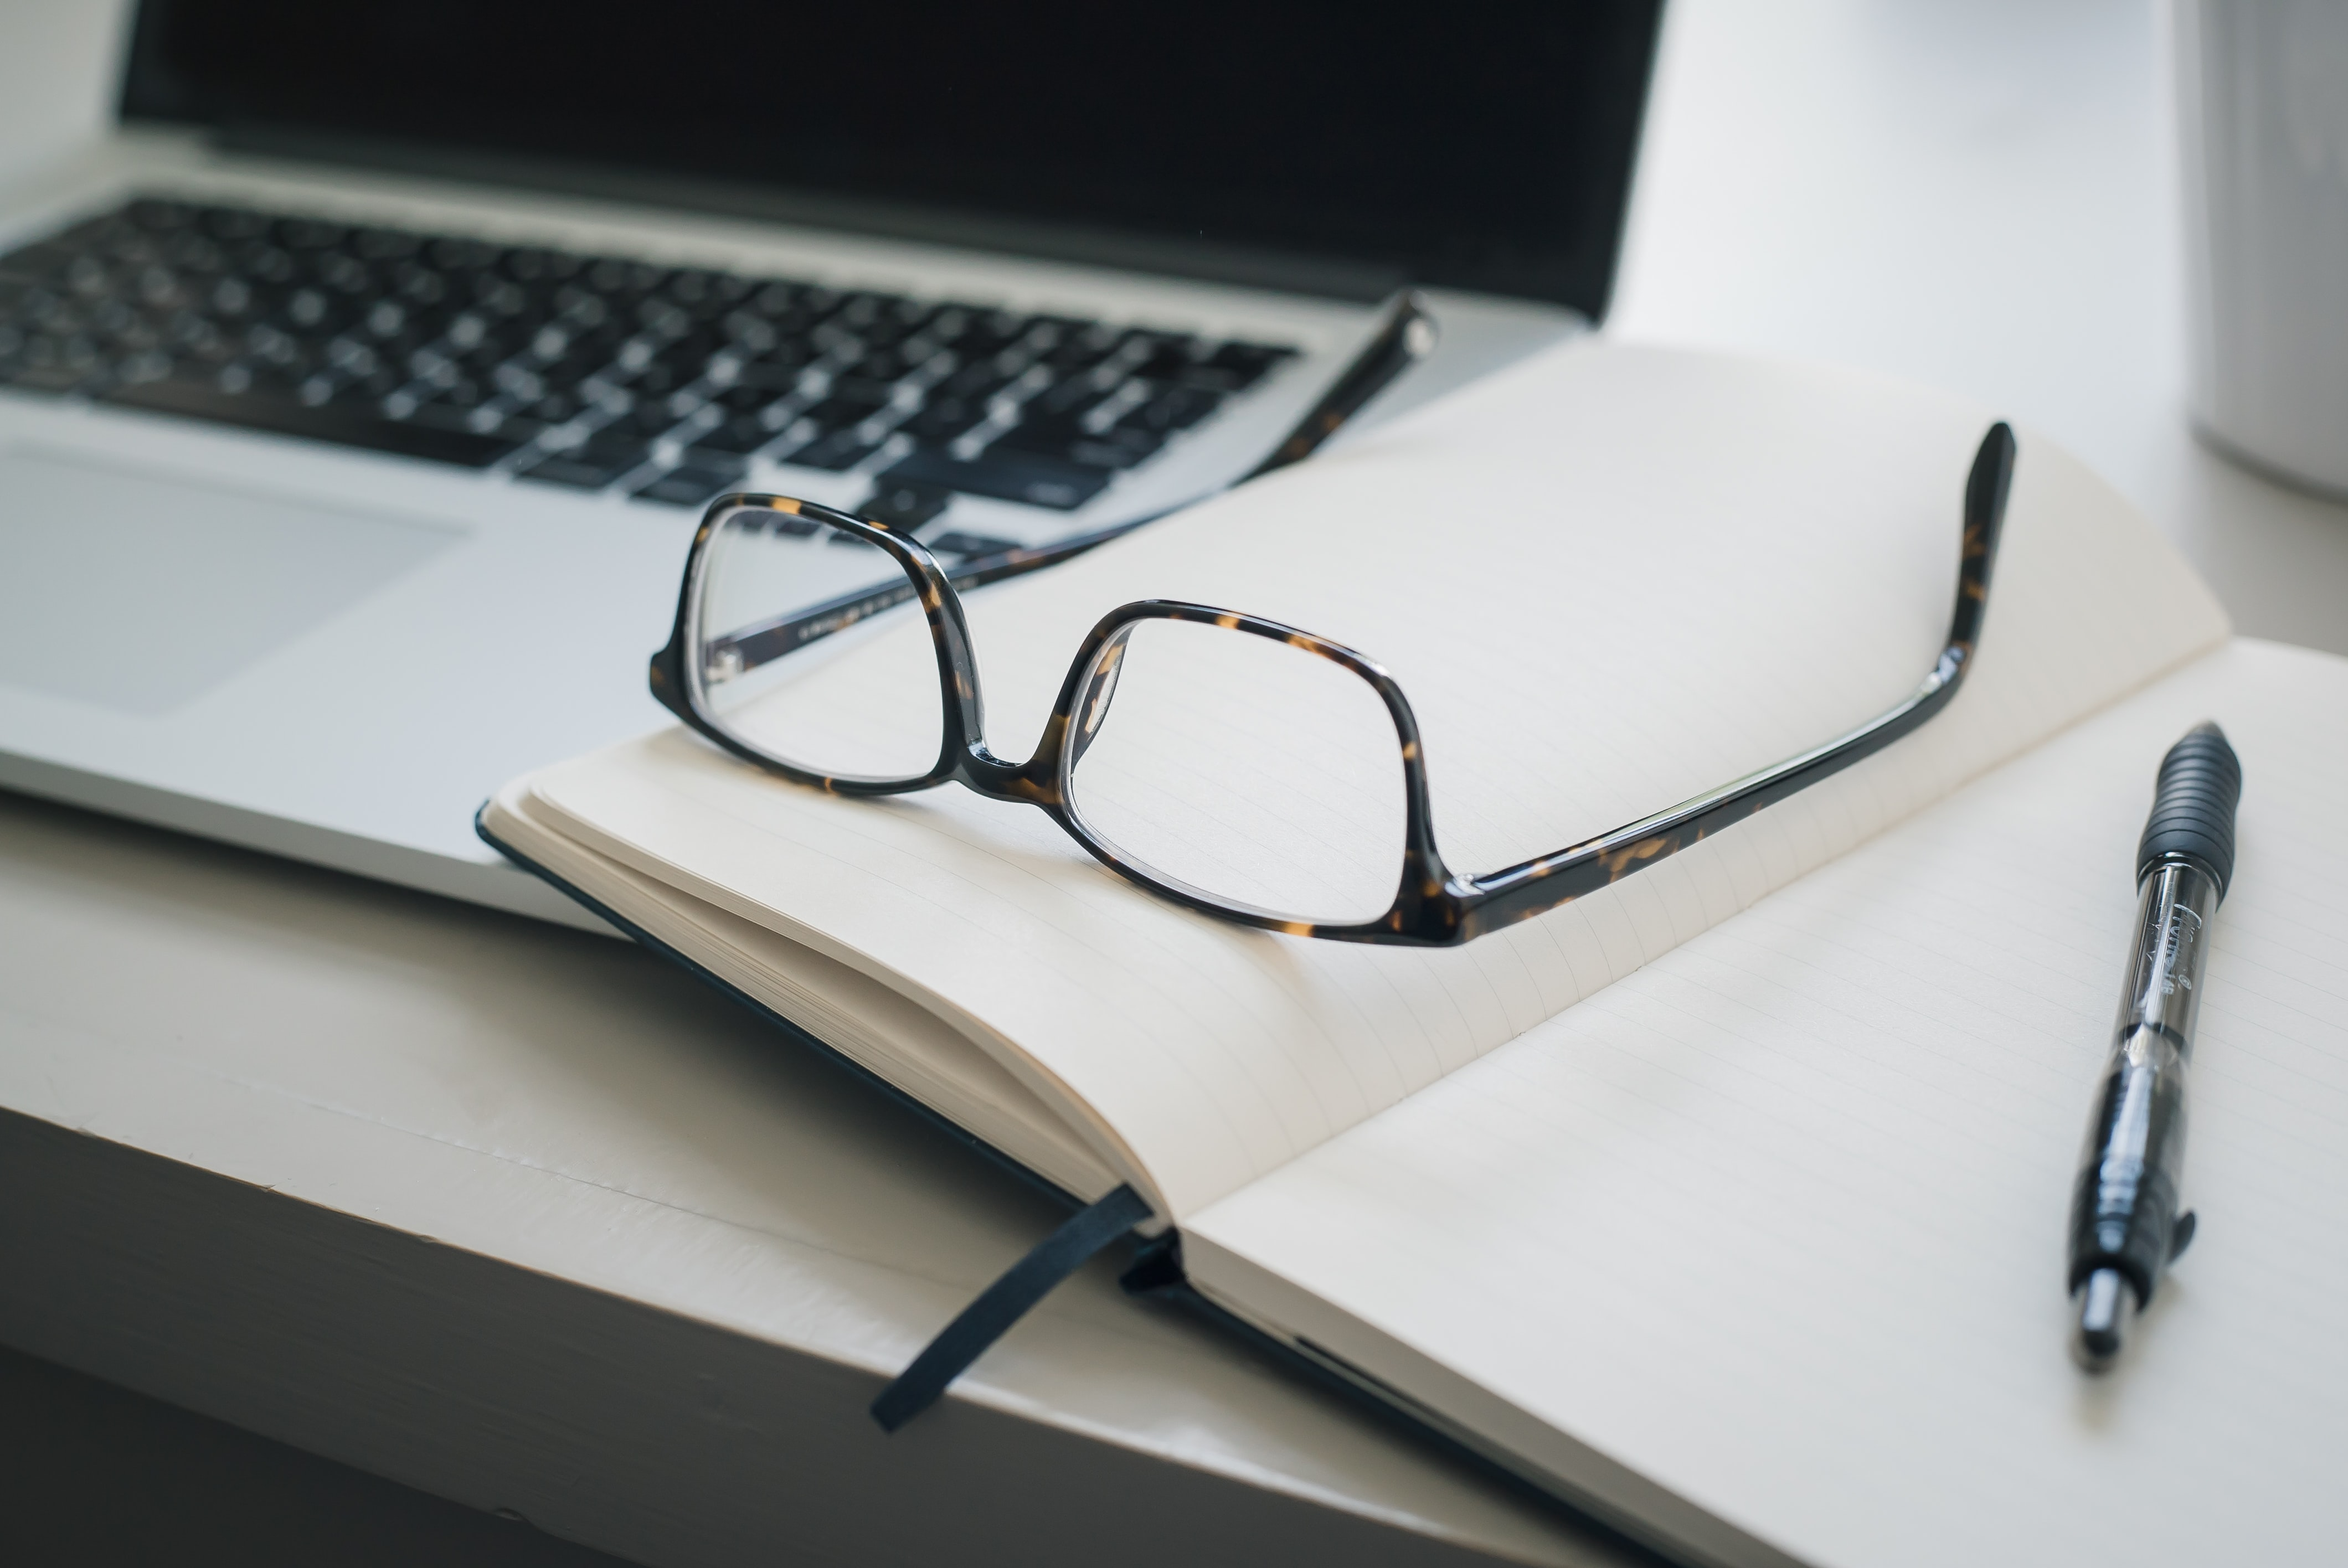 glasses and pen on a book resting atop a keyboard - photo by Trent Erwin on Unsplash